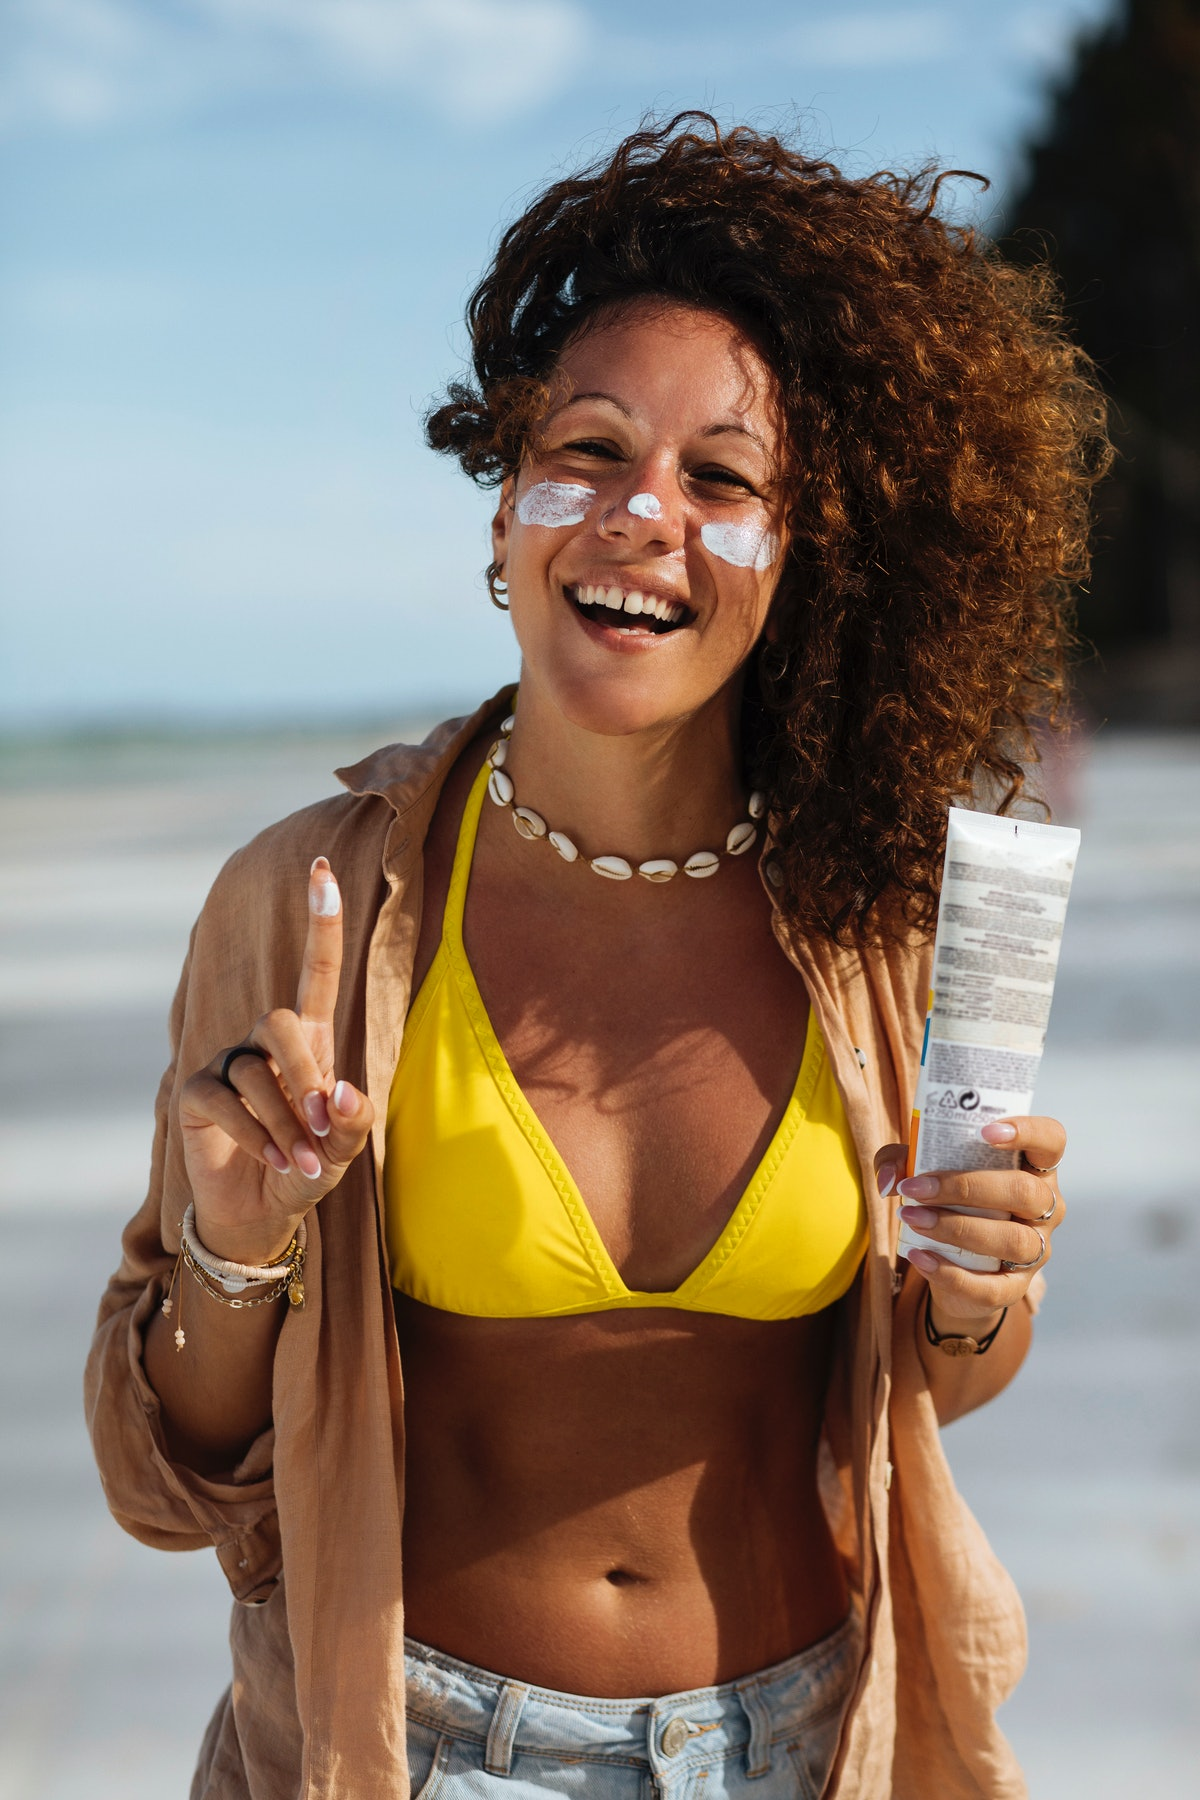 A tan young woman with curly hair laughs while applying sunscreen to her face on the beach